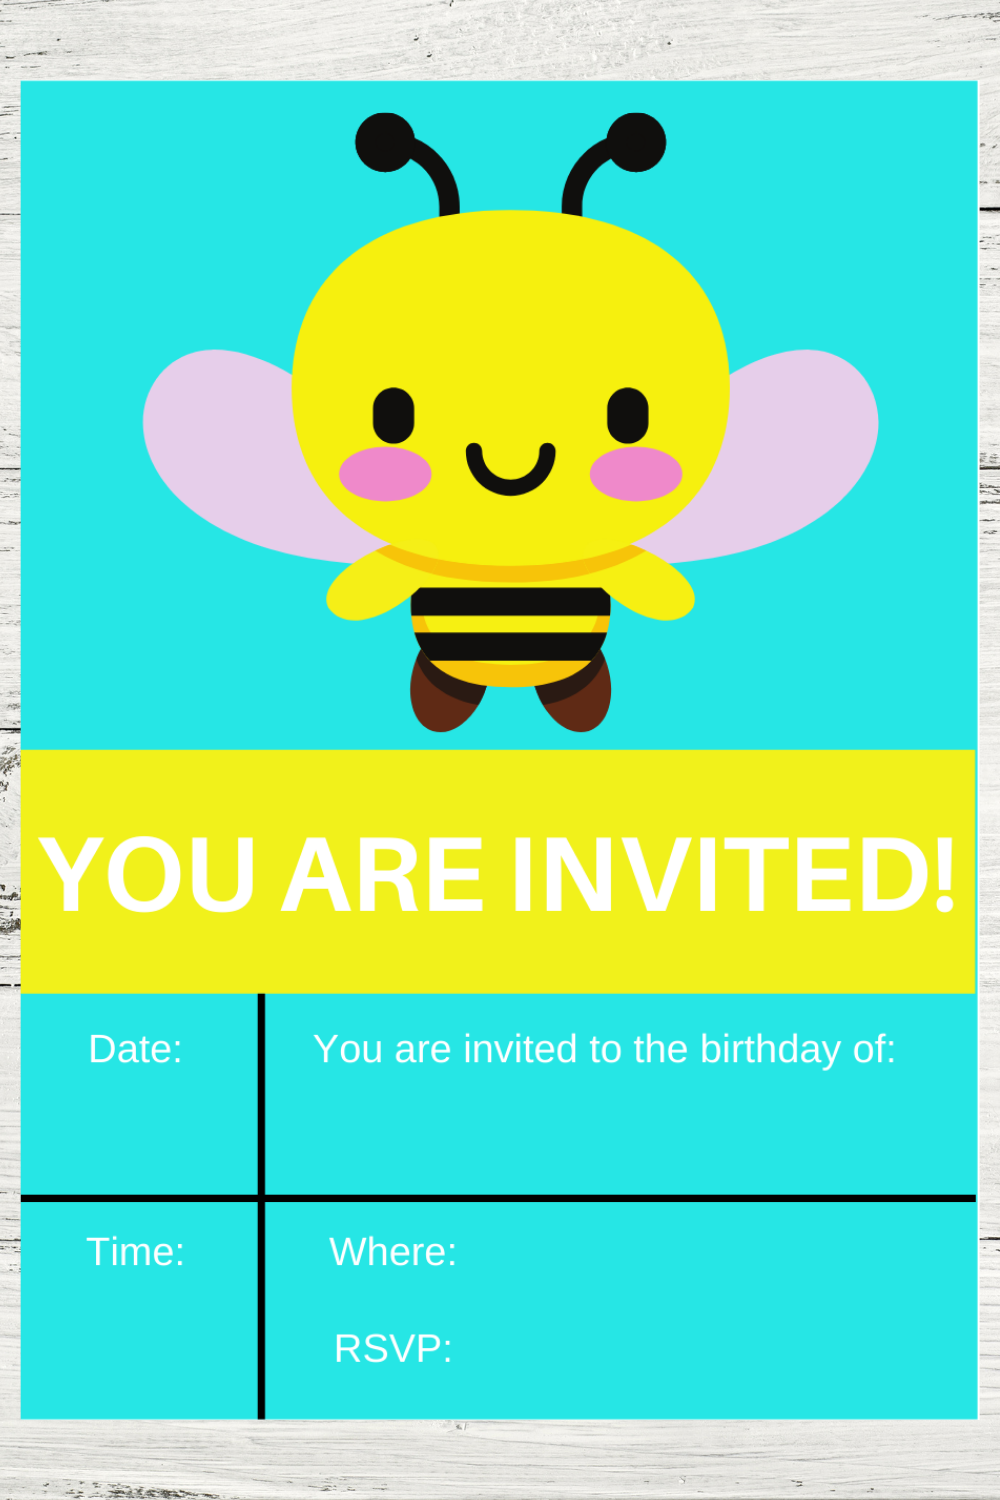 bumble bee birthday party invitation for a 1st birthday party